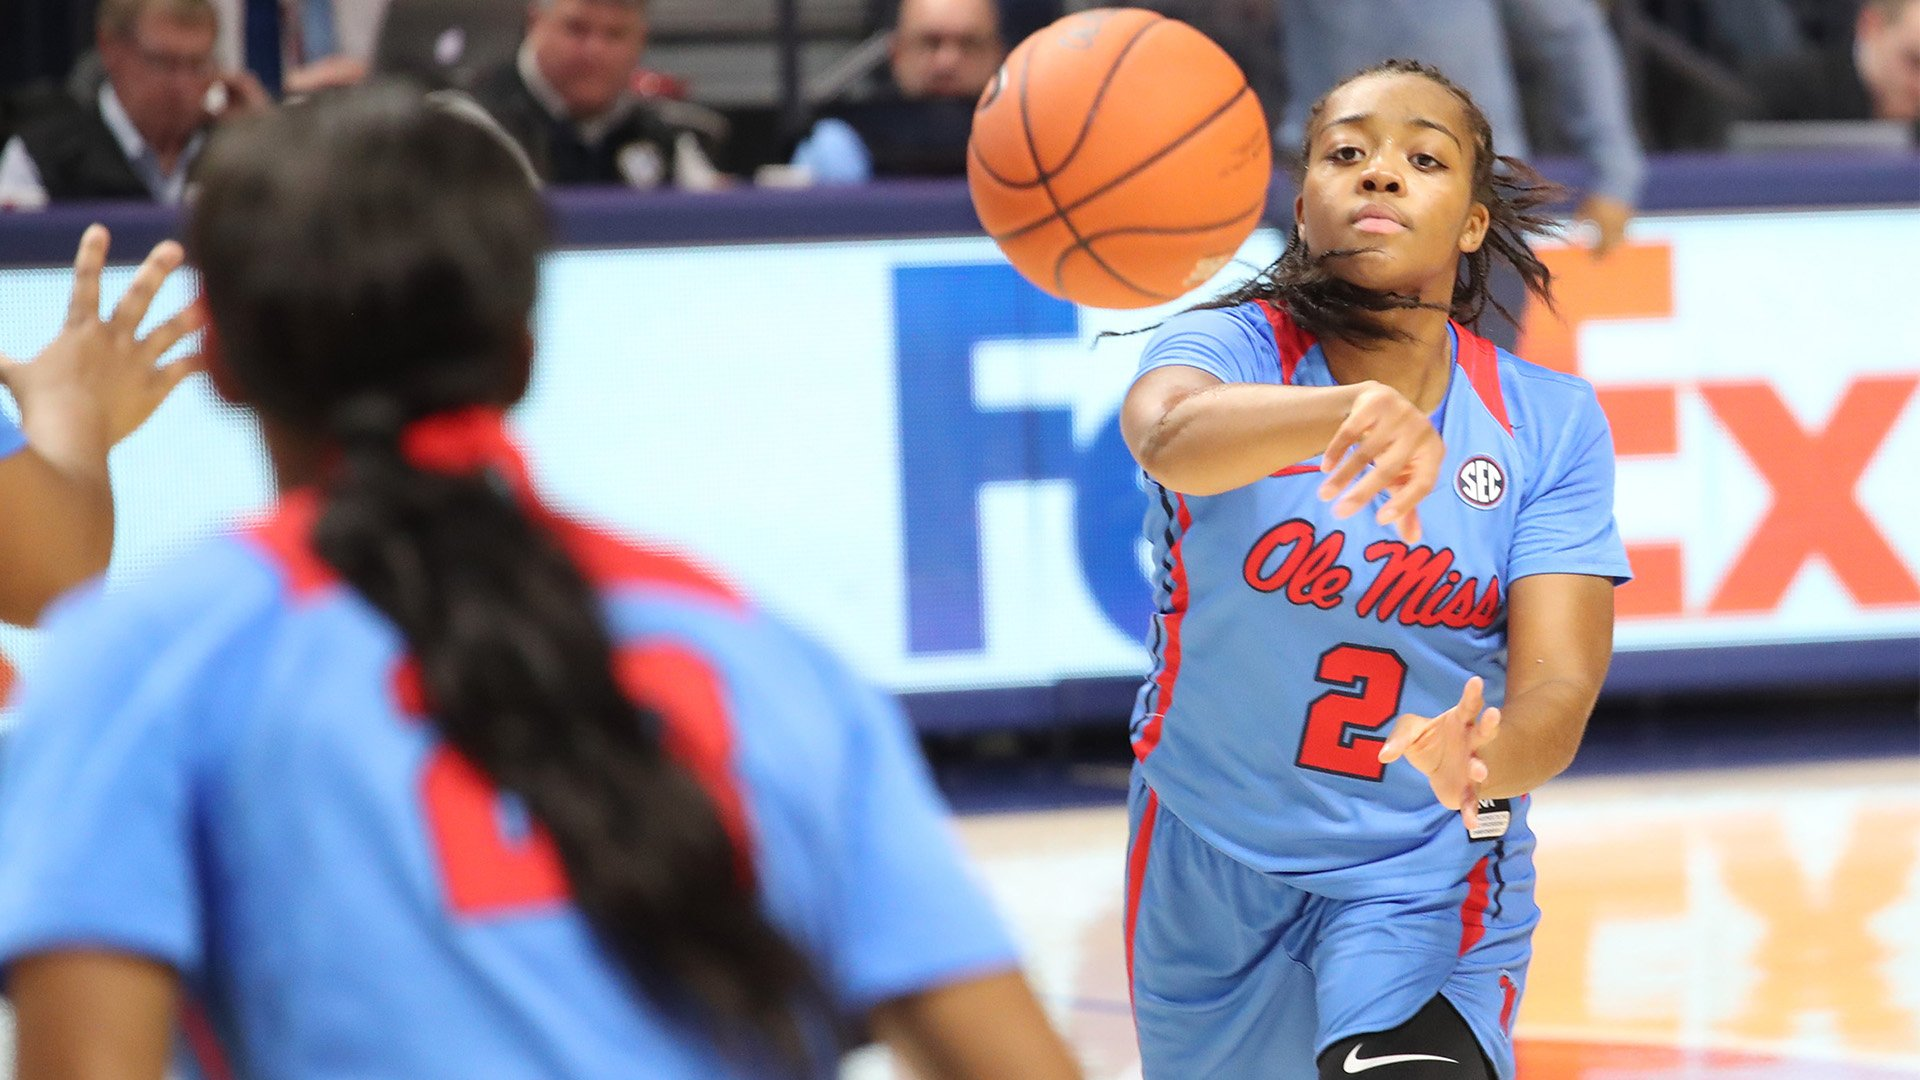 The Season: Ole Miss Women's Basketball – No Ceilings (2018)